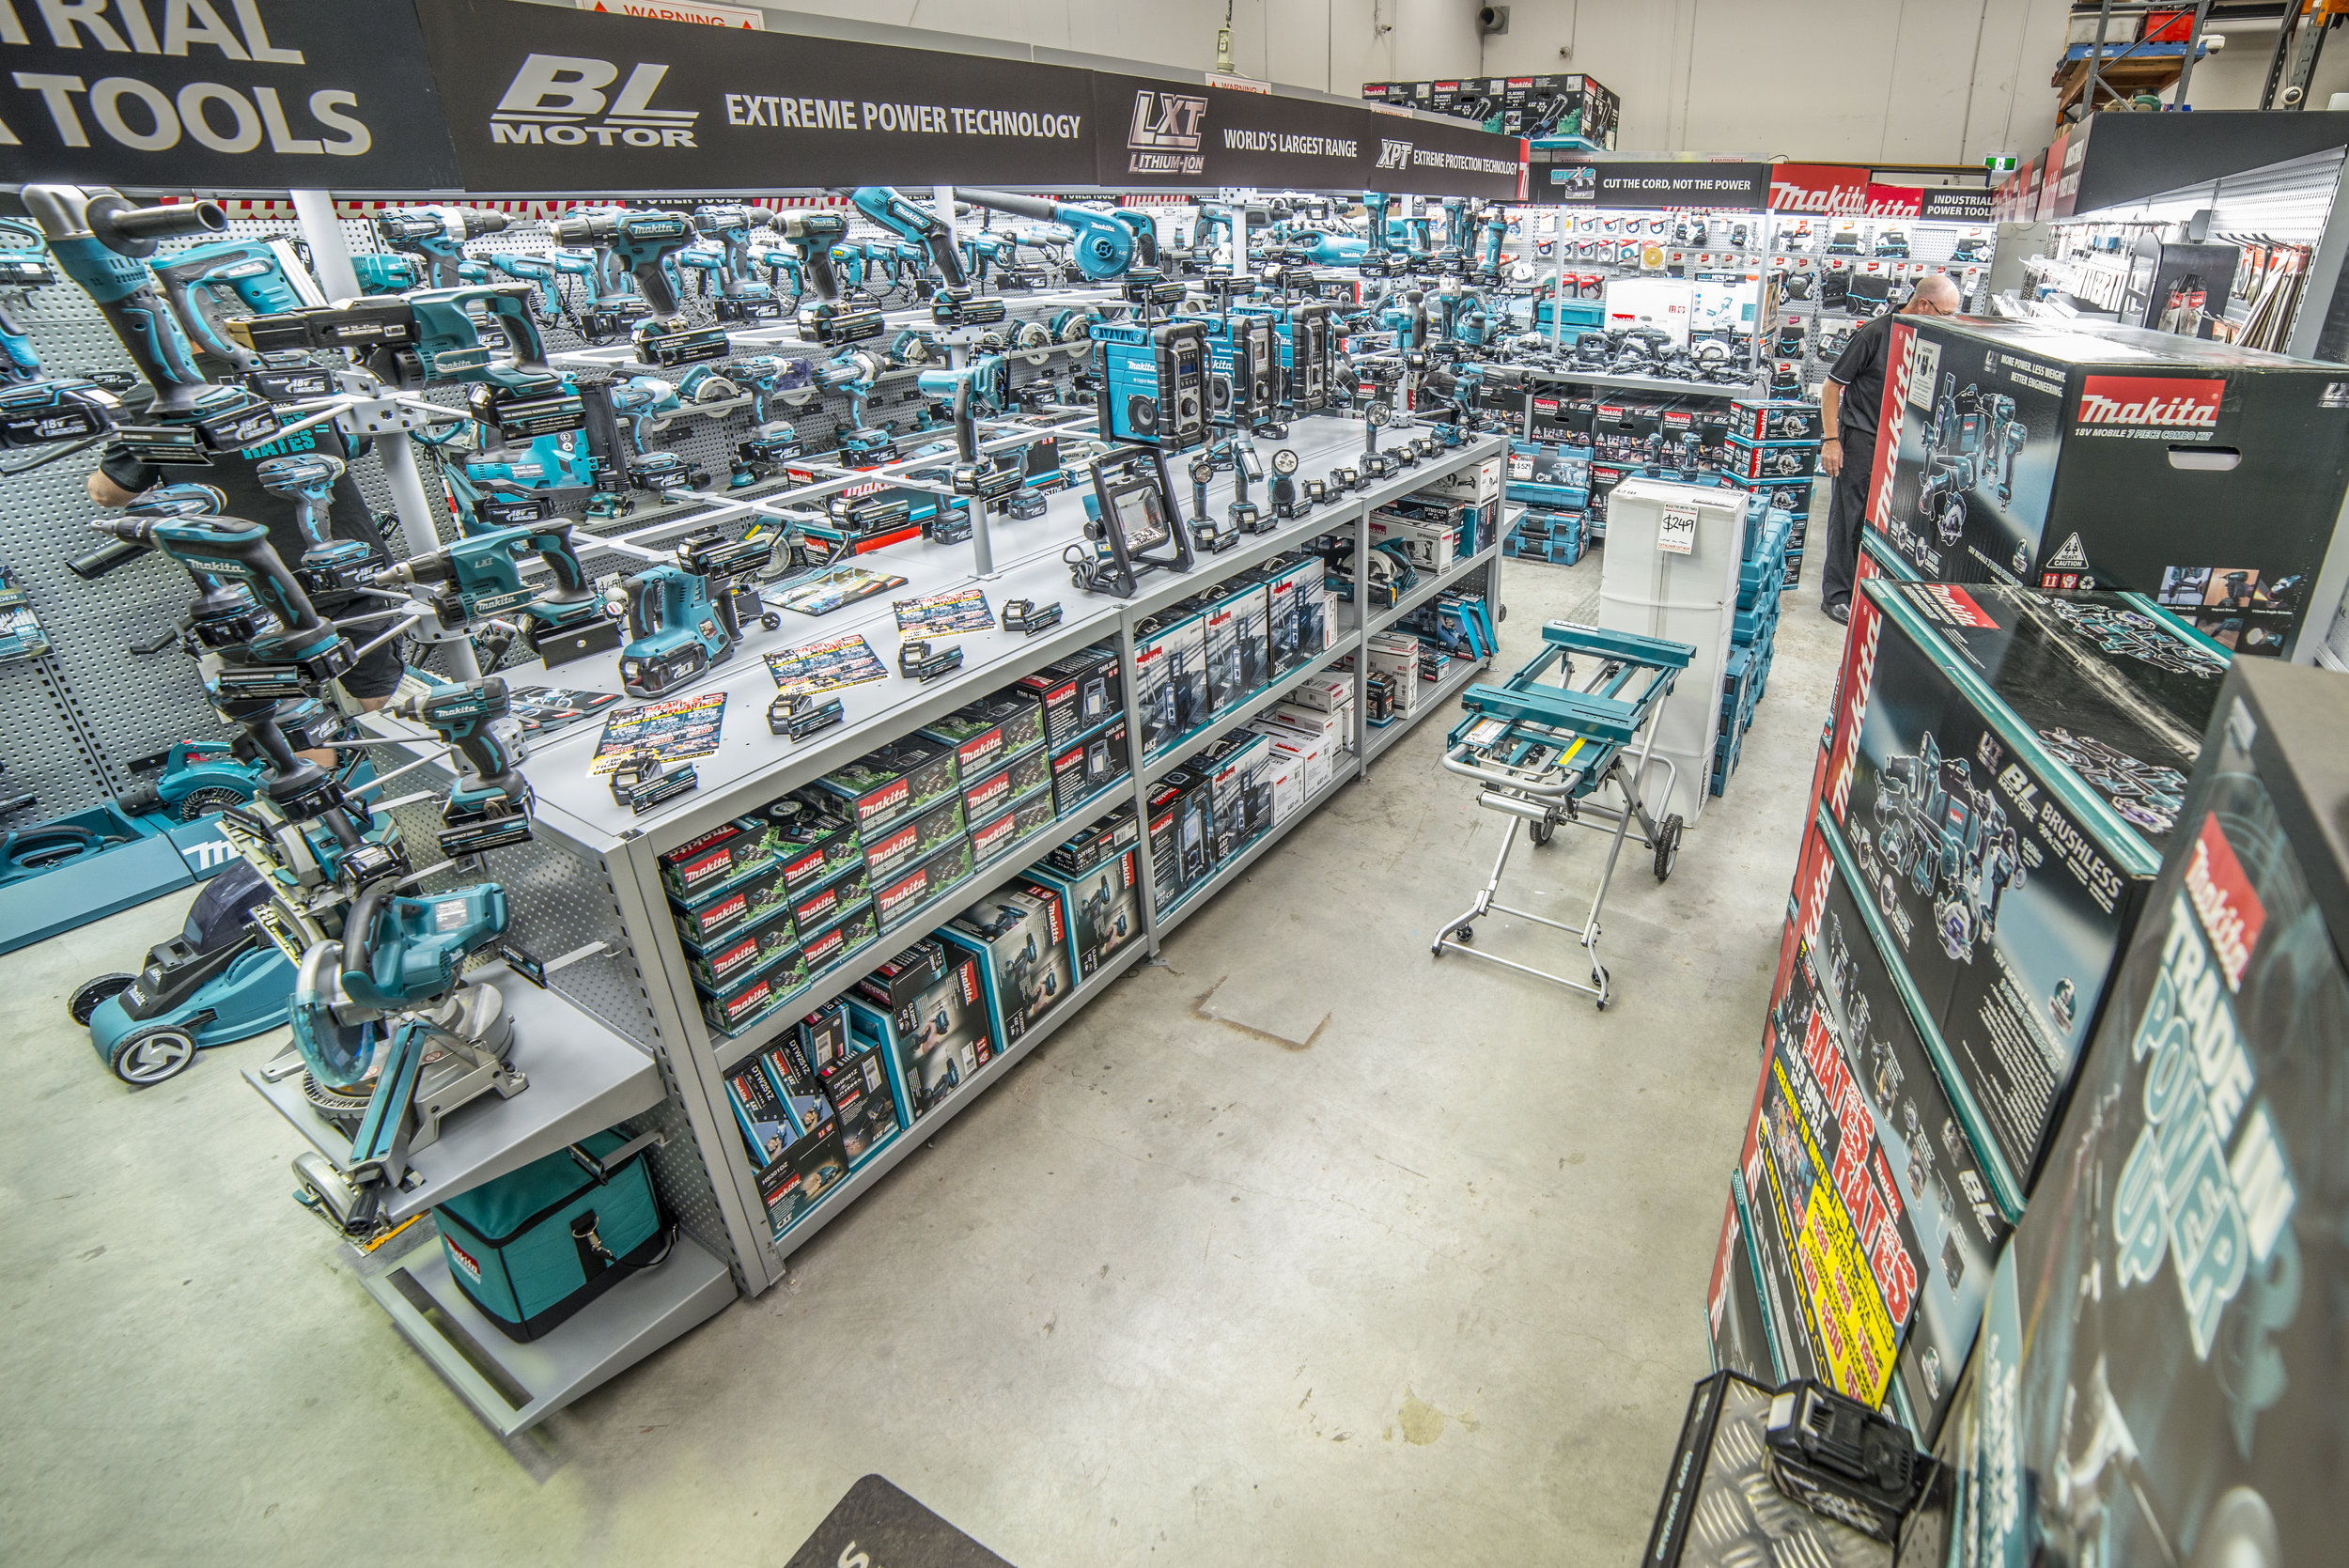 Makita Display SFI-80.jpg